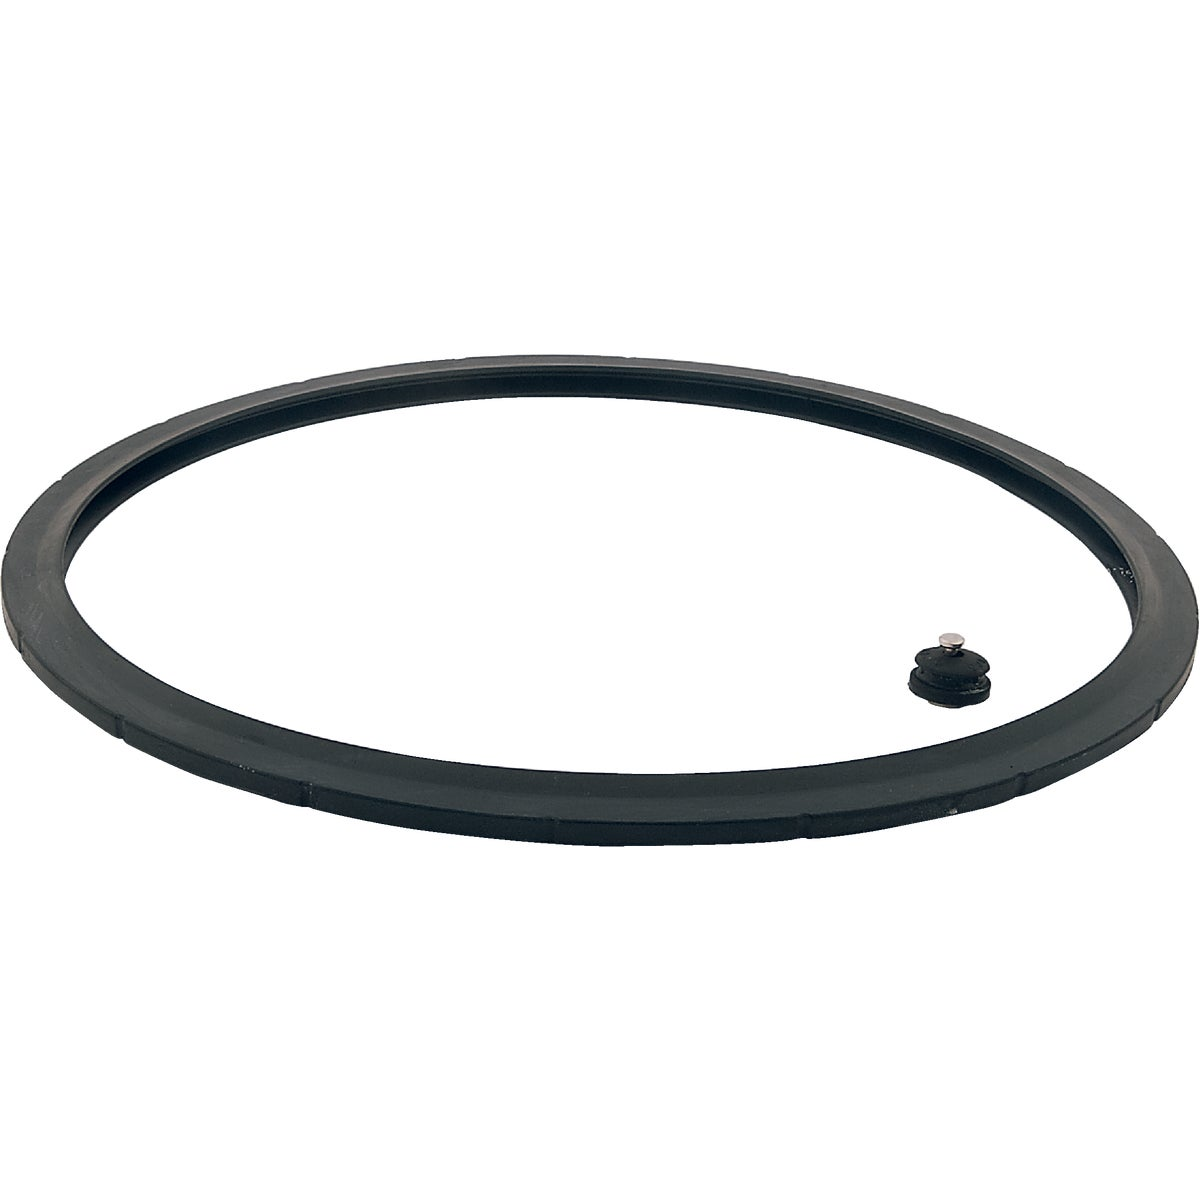 SEALING RING - 09918 by National Presto